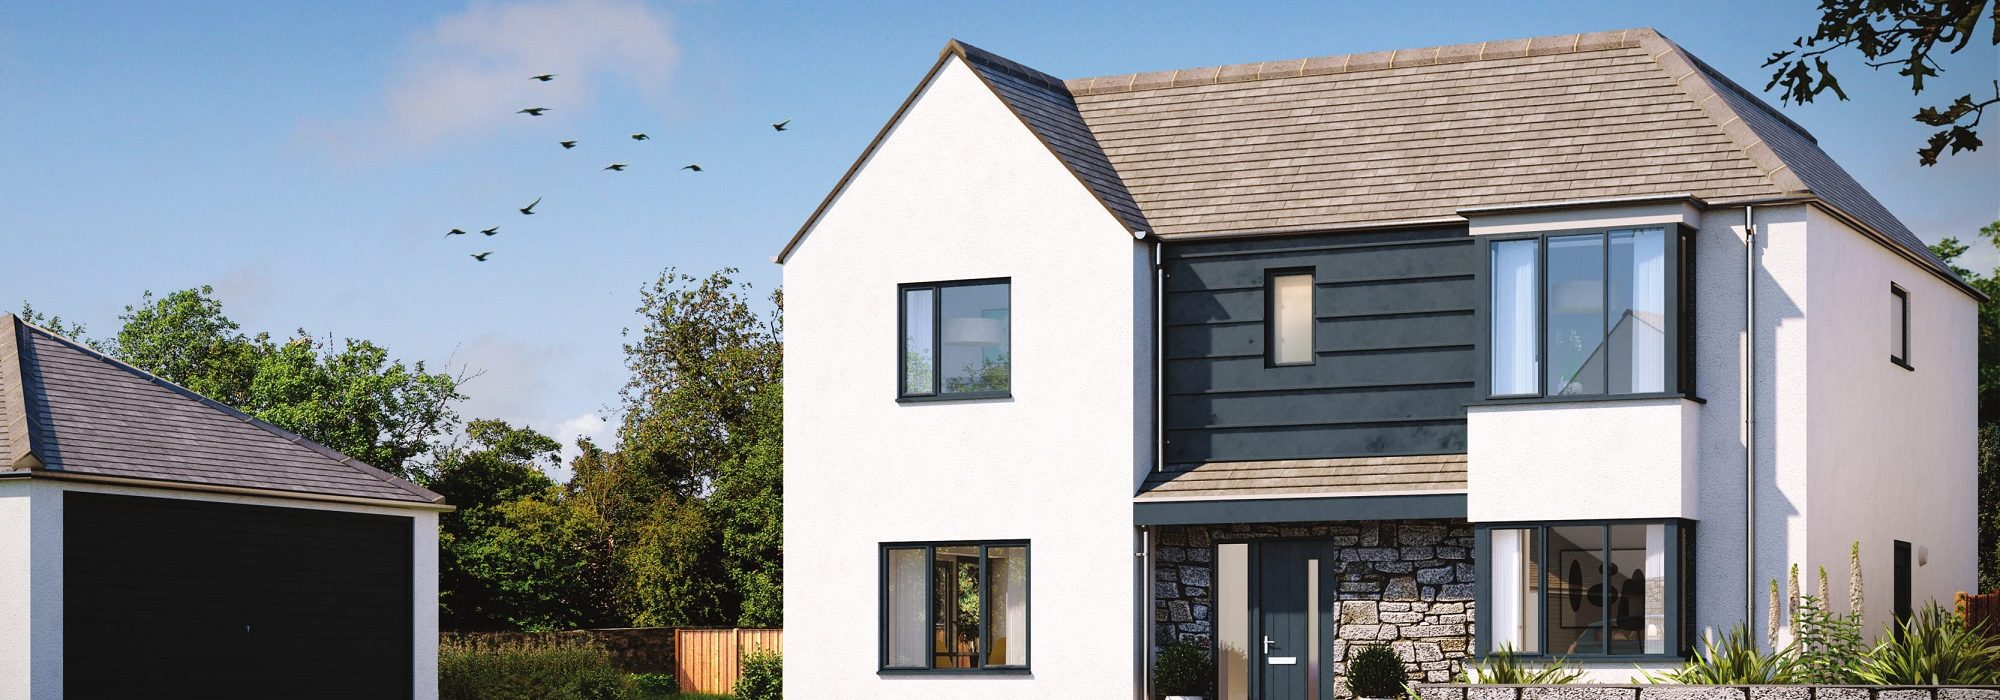 5 bedroom home HalwynMeadows Crantock whiteandzinc.jpeg 2000x700 - House 49 - 5 Bedroom Detached Home